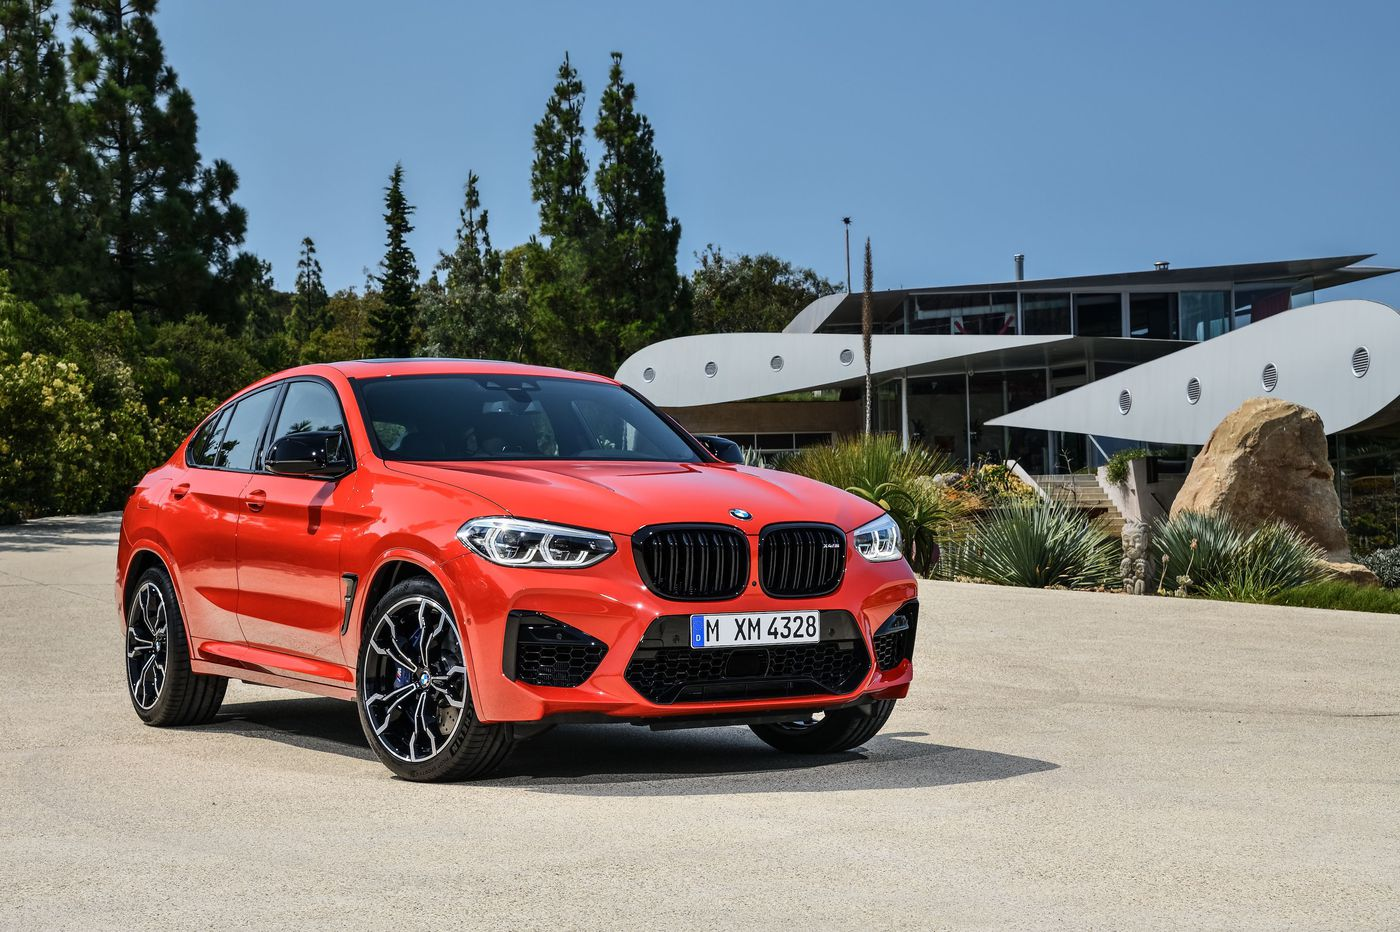 2019 BMW X4M: A hot-rod hatchback crossover